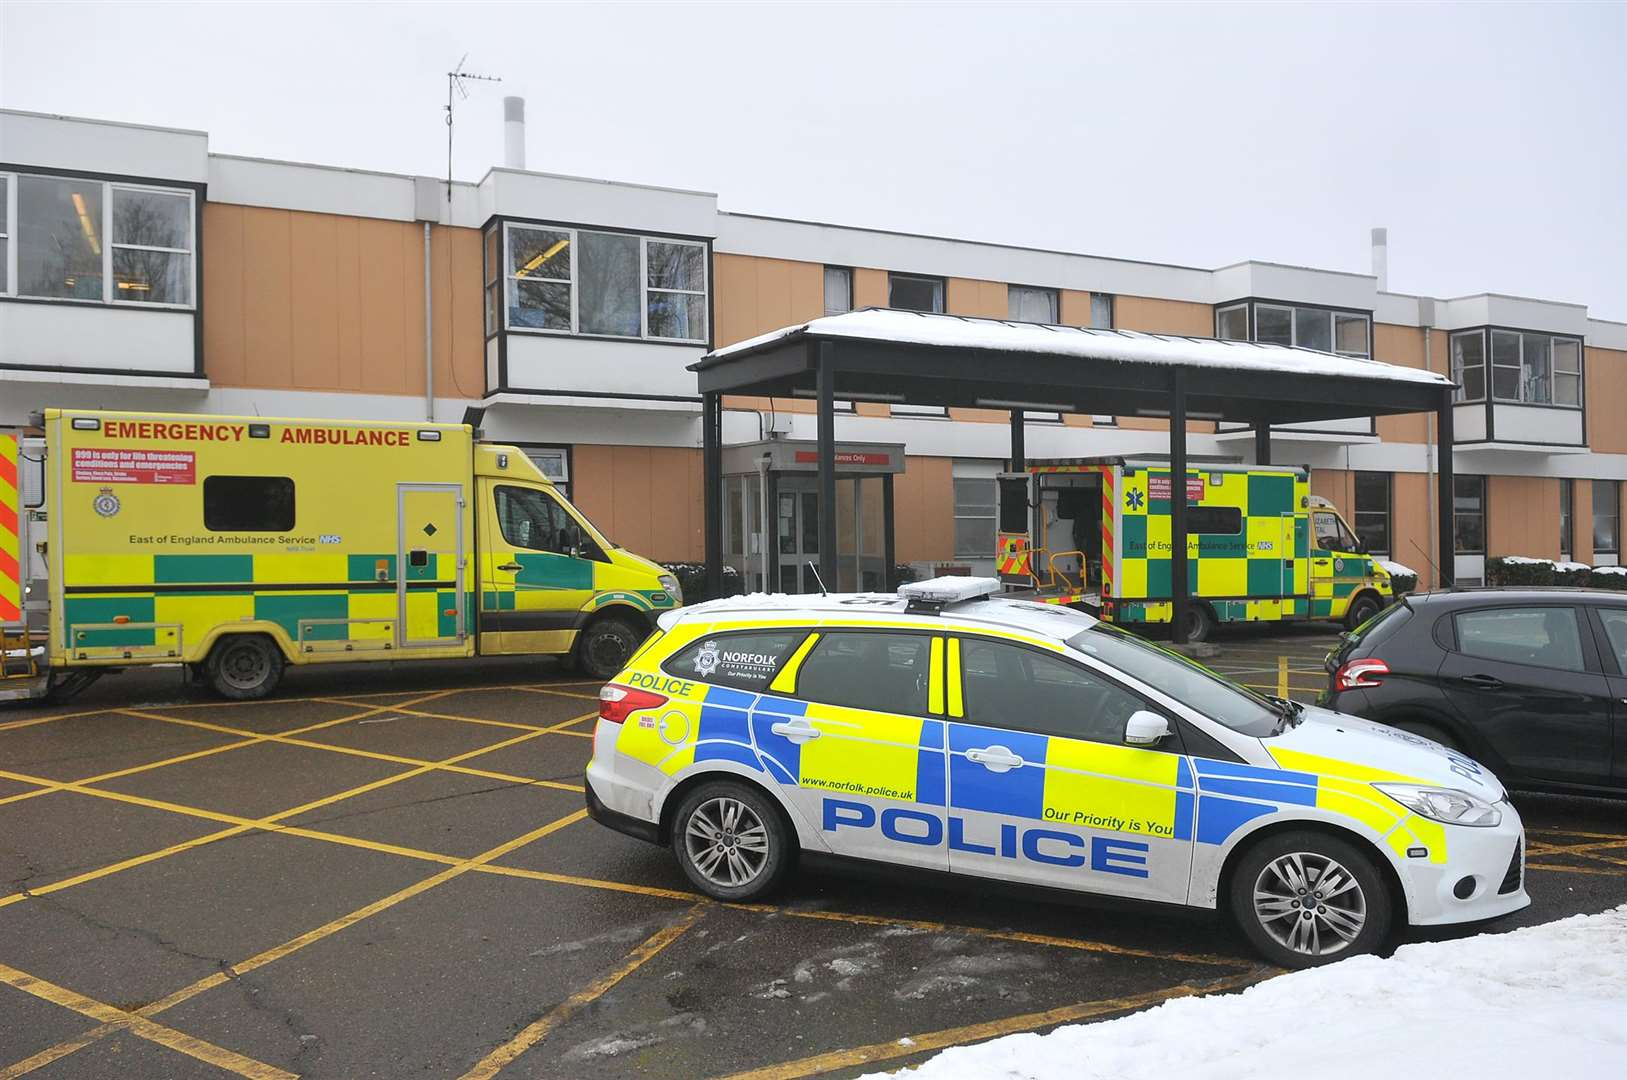 Views of the Queen Elizabeth Hospital. Entrance to Accident and Emergency